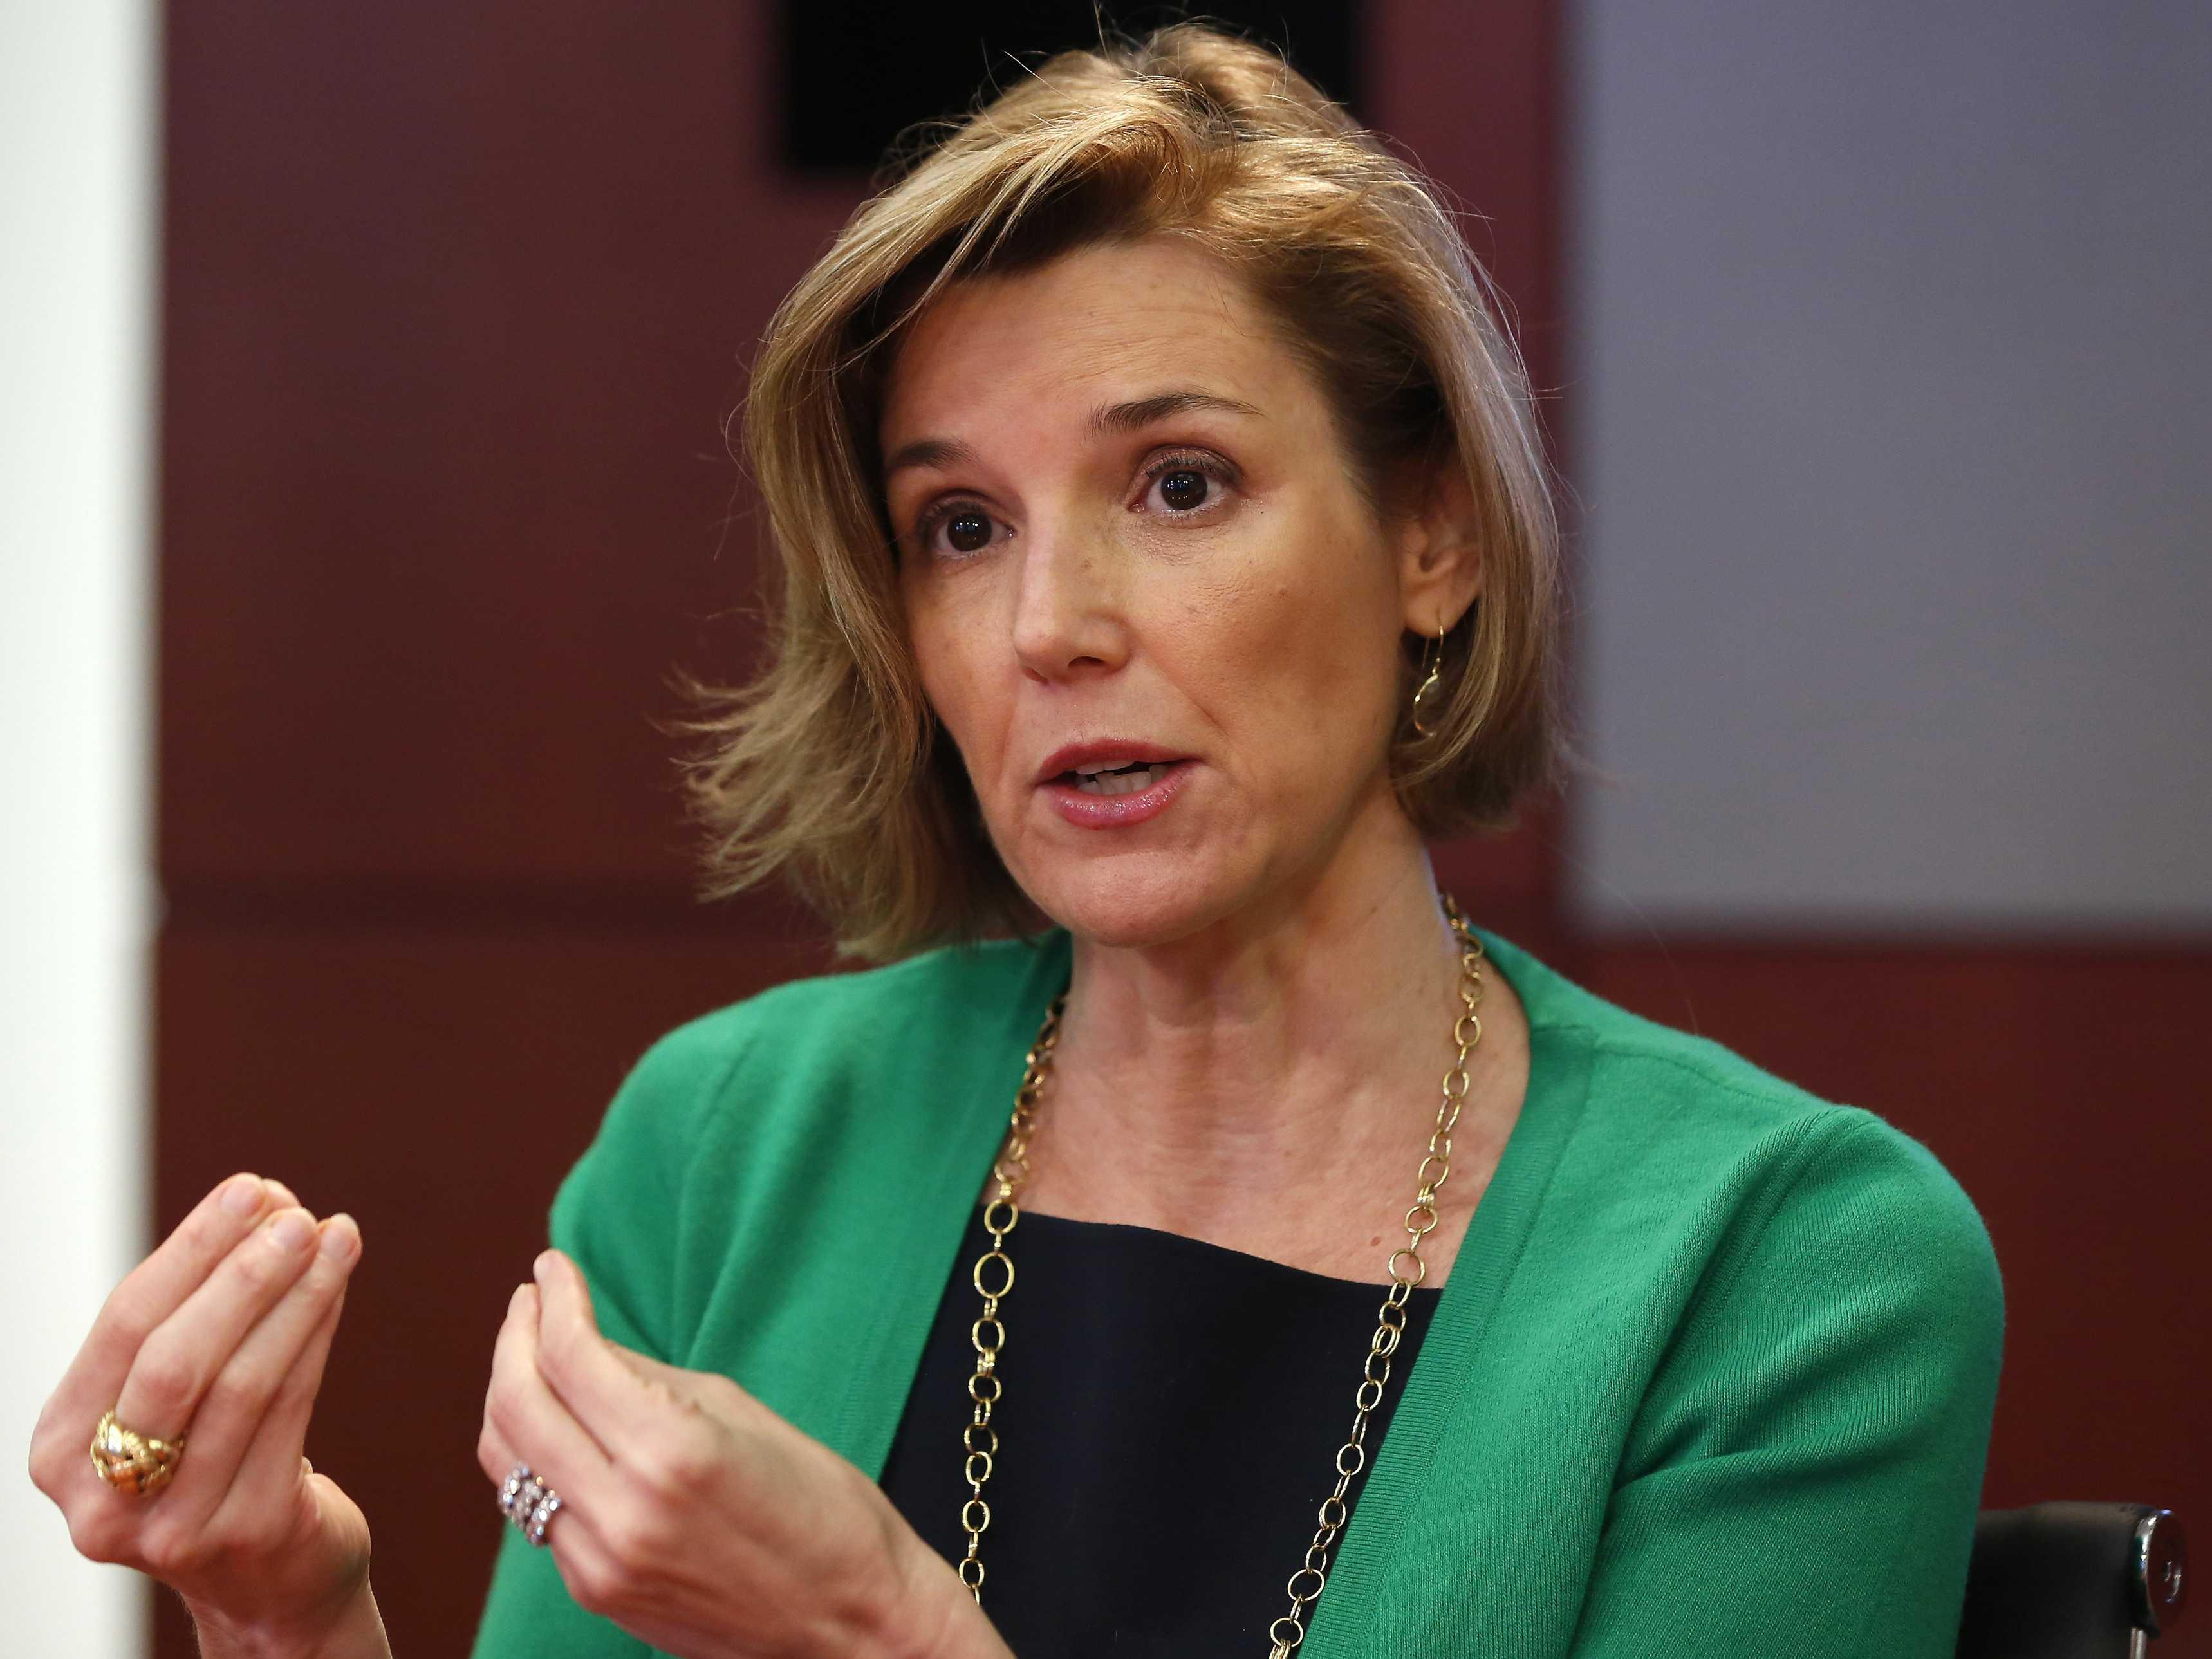 SALLIE KRAWCHECK: The economy is changing so fast that no one is safe